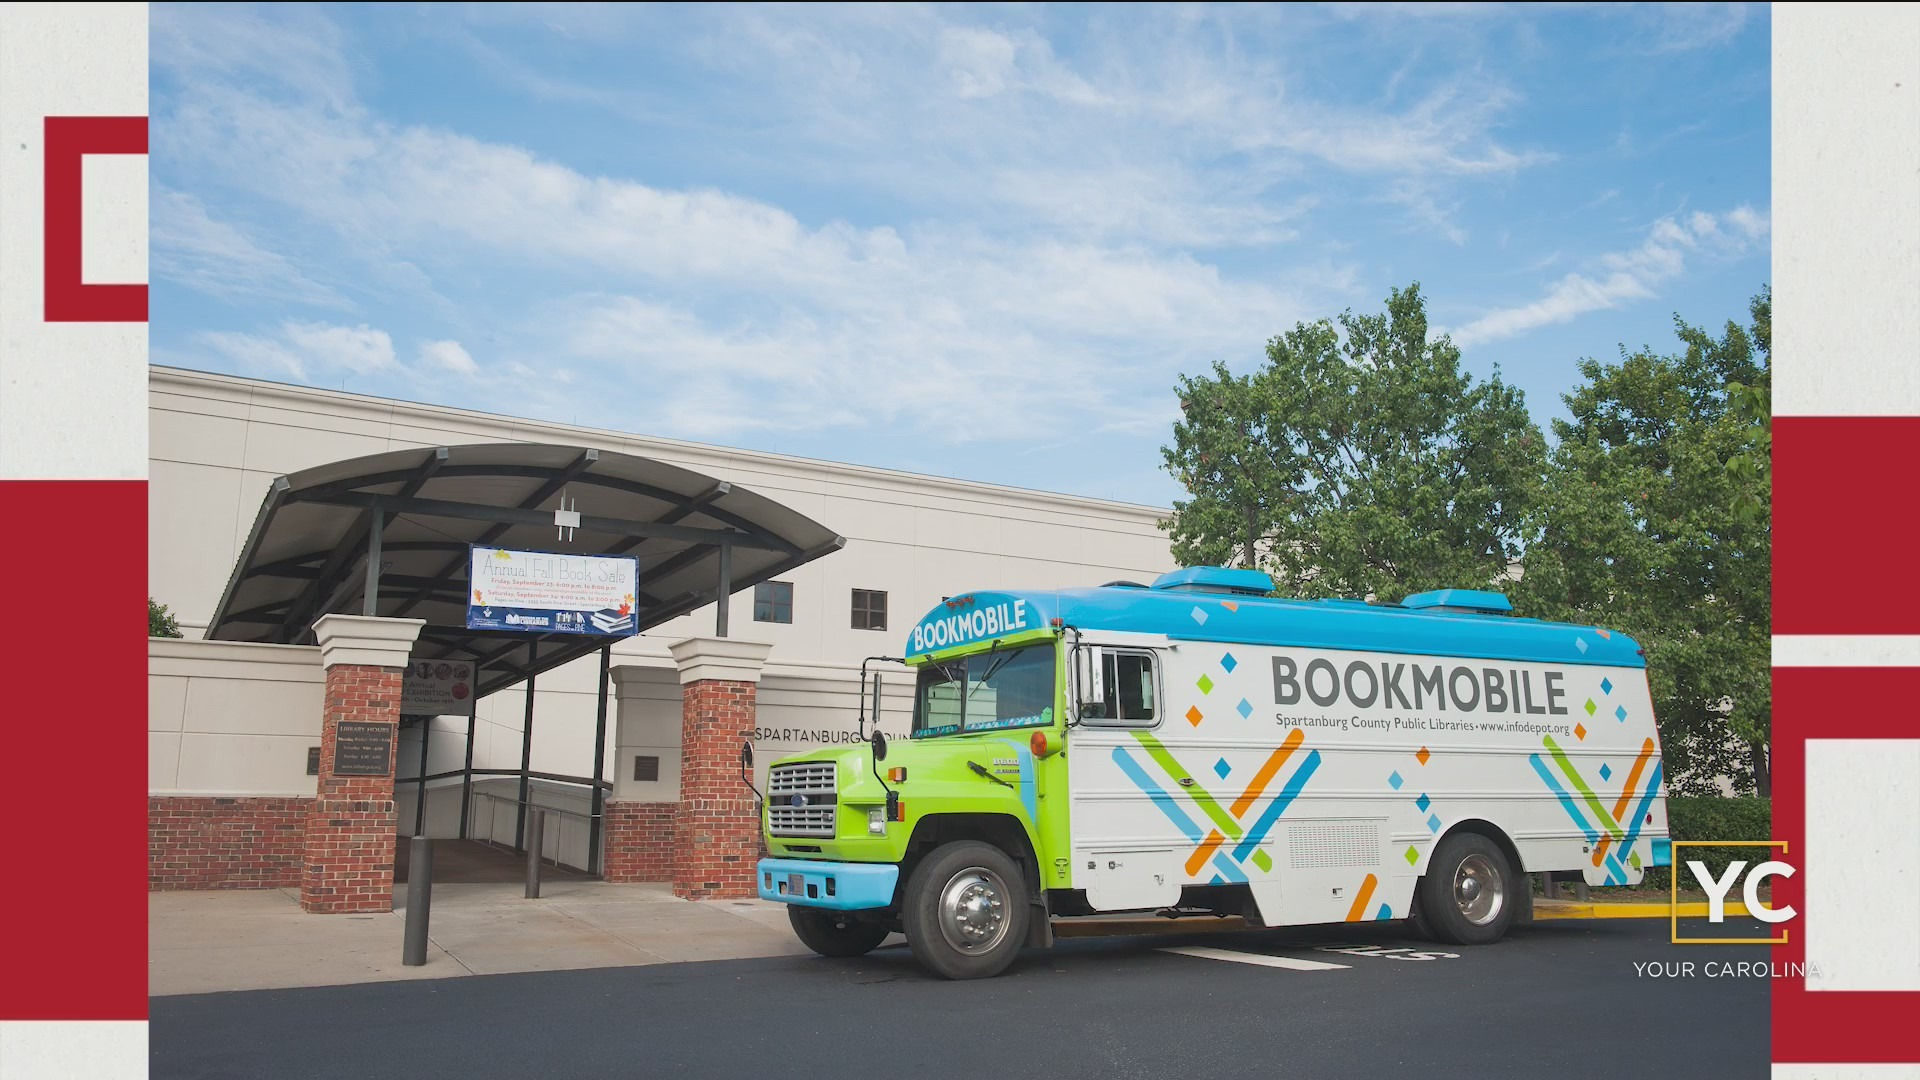 Spartanburg Library Bookmobile Services & Other Library Programs